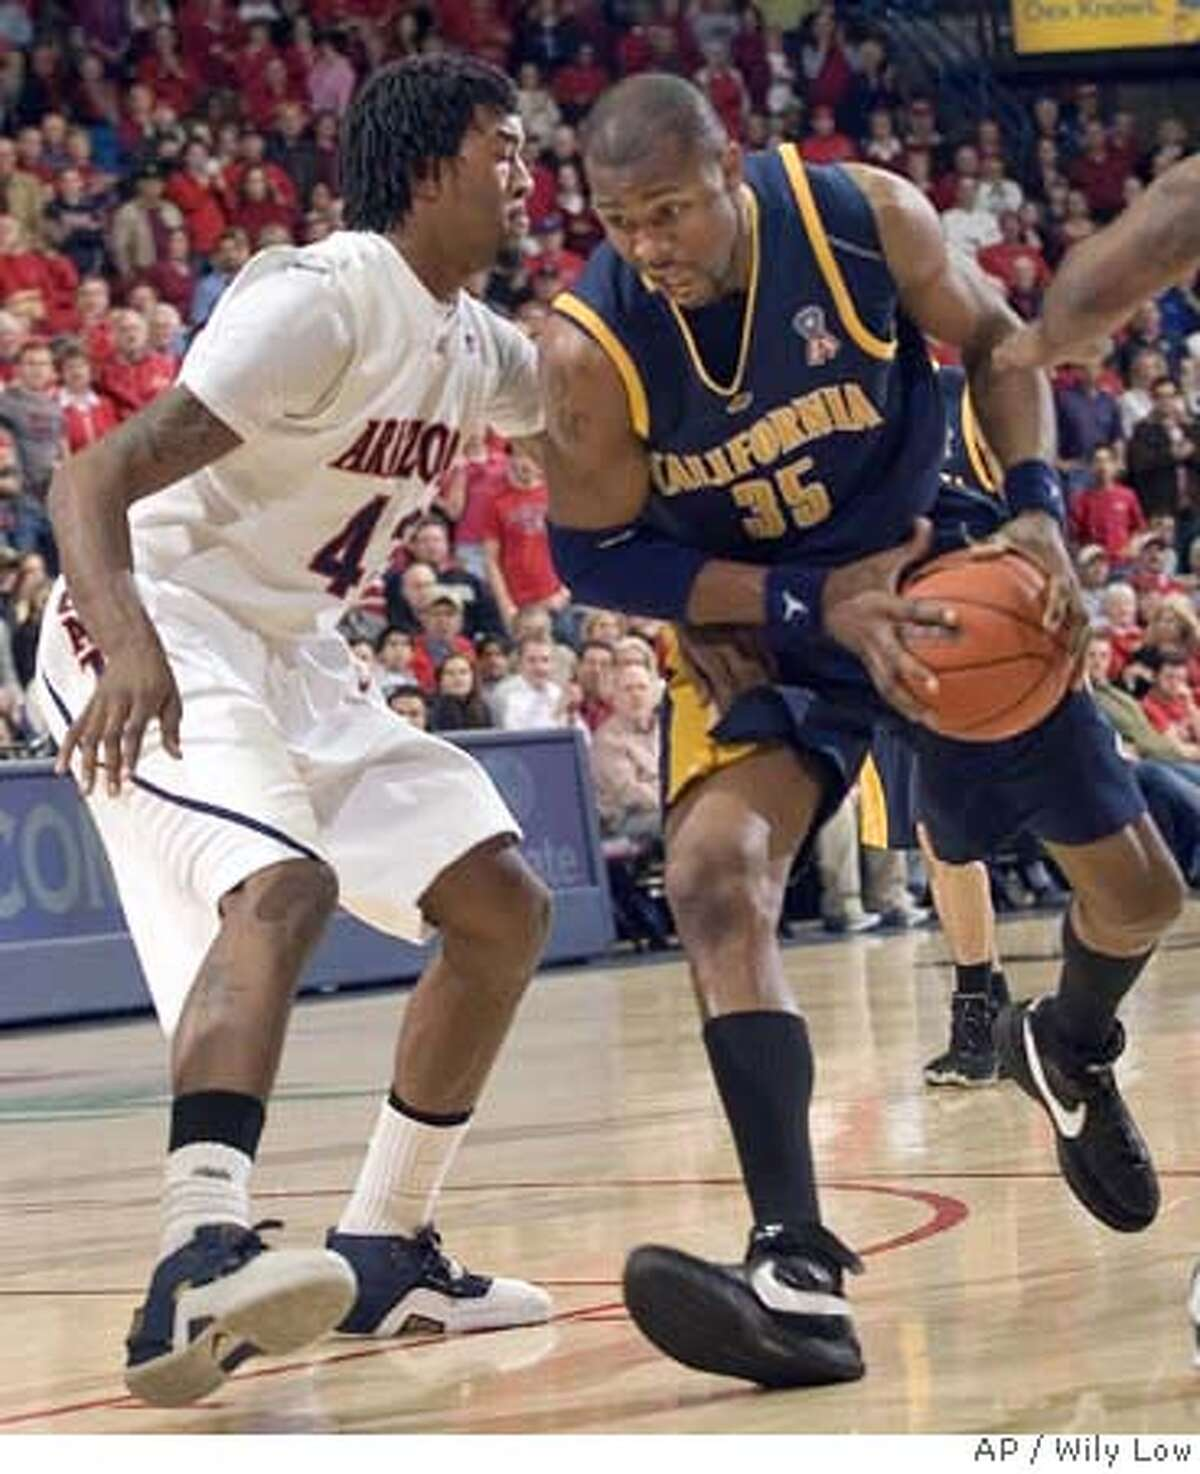 California's DeVon Hardin (35) tries to drive to the basket around Arizona's Jordan Hill (43) in the first half of a college basketball game in Tucson, Ariz., Thursday, Feb. 14, 2008. (AP Photo/Wily Low) EFE OUT